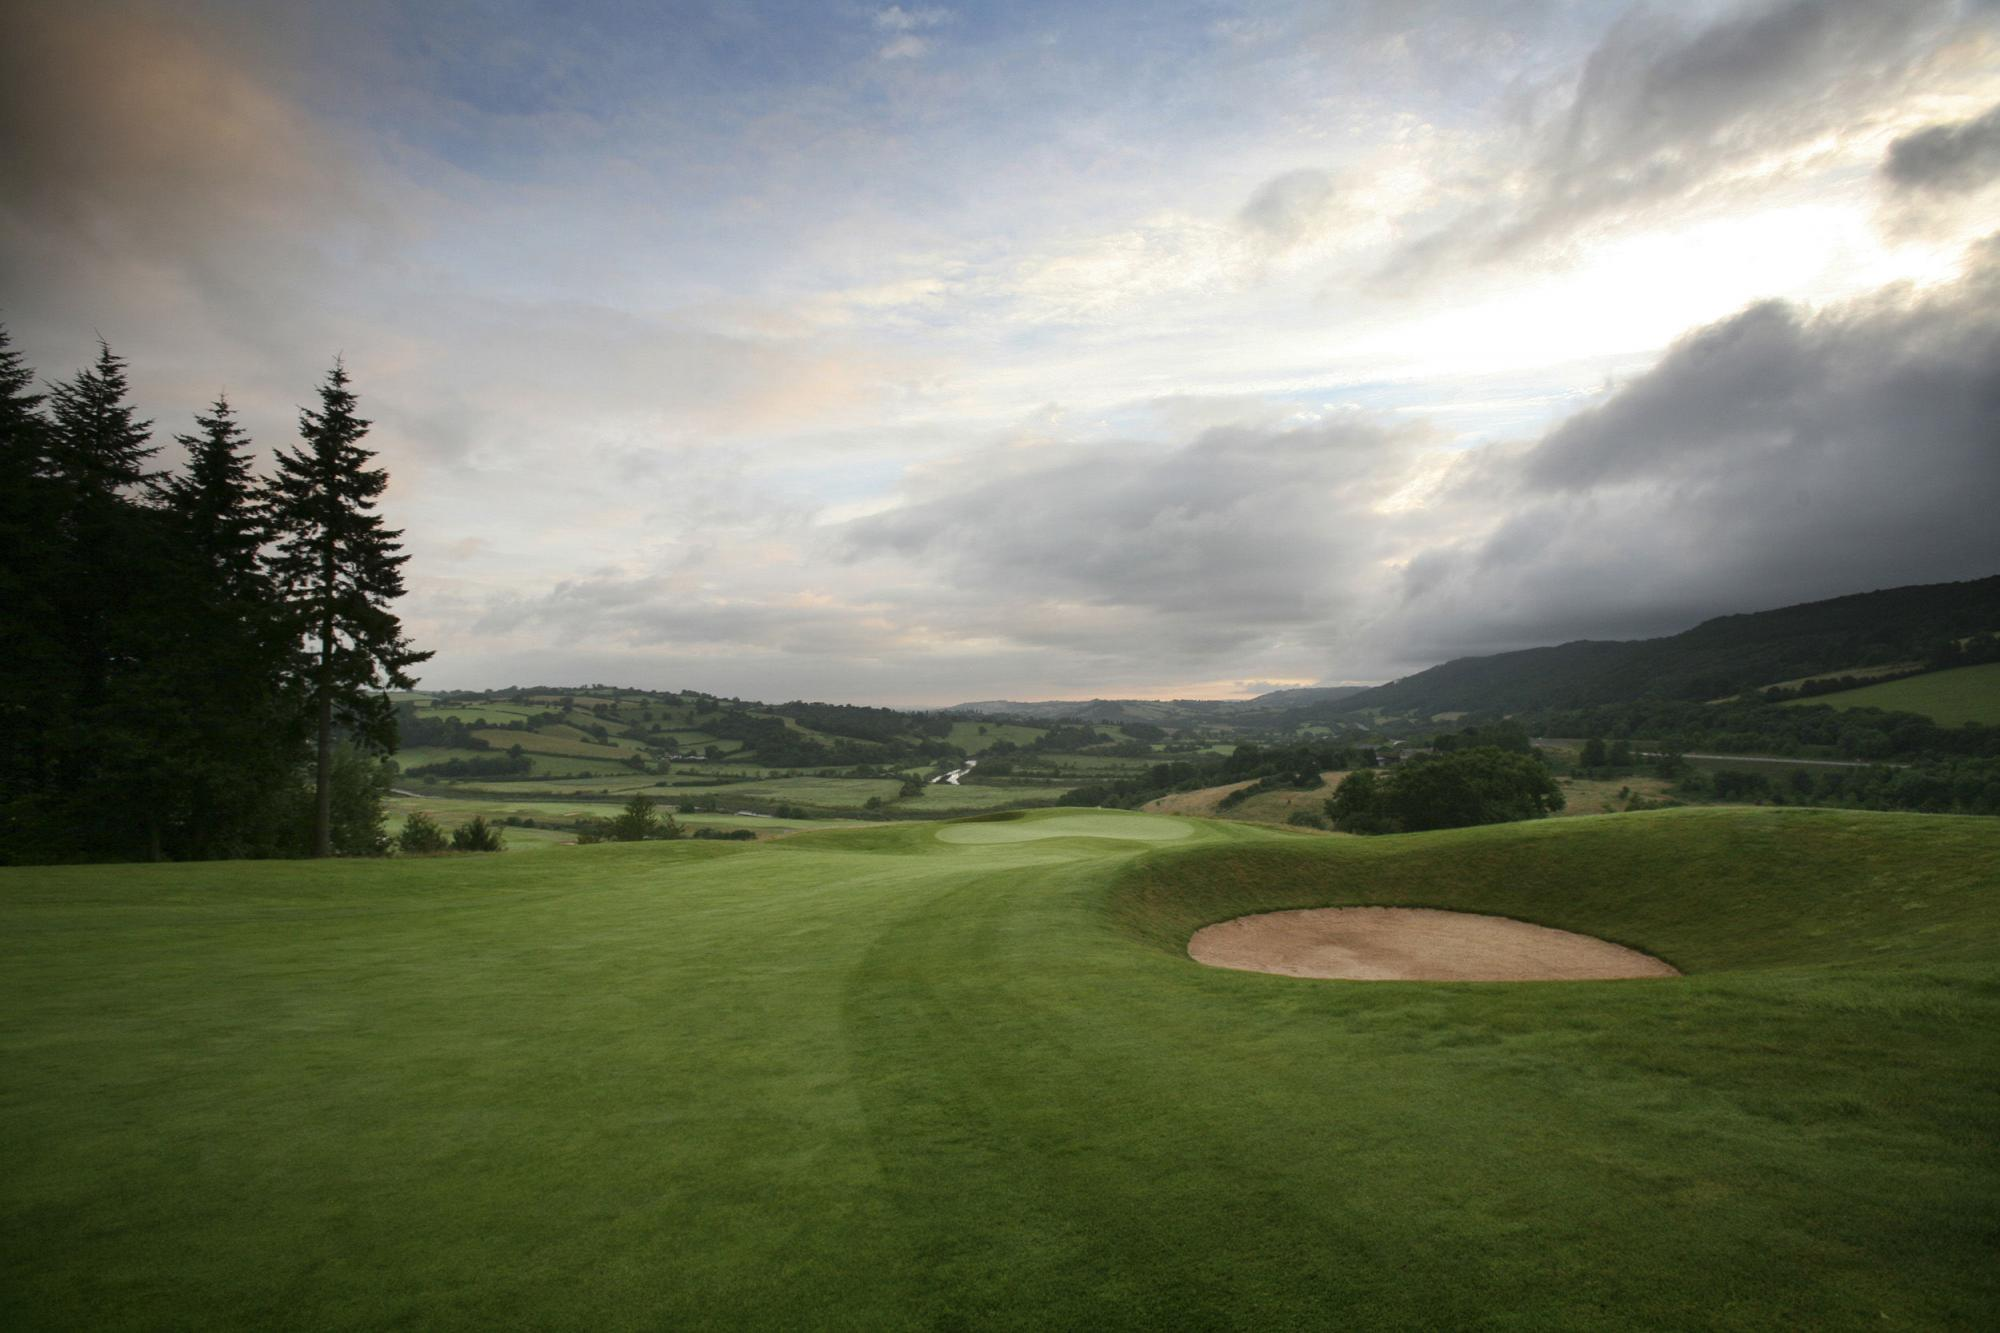 View The Montgomerie Course at Celtic Manor Resort's picturesque golf course within dazzling Wales.